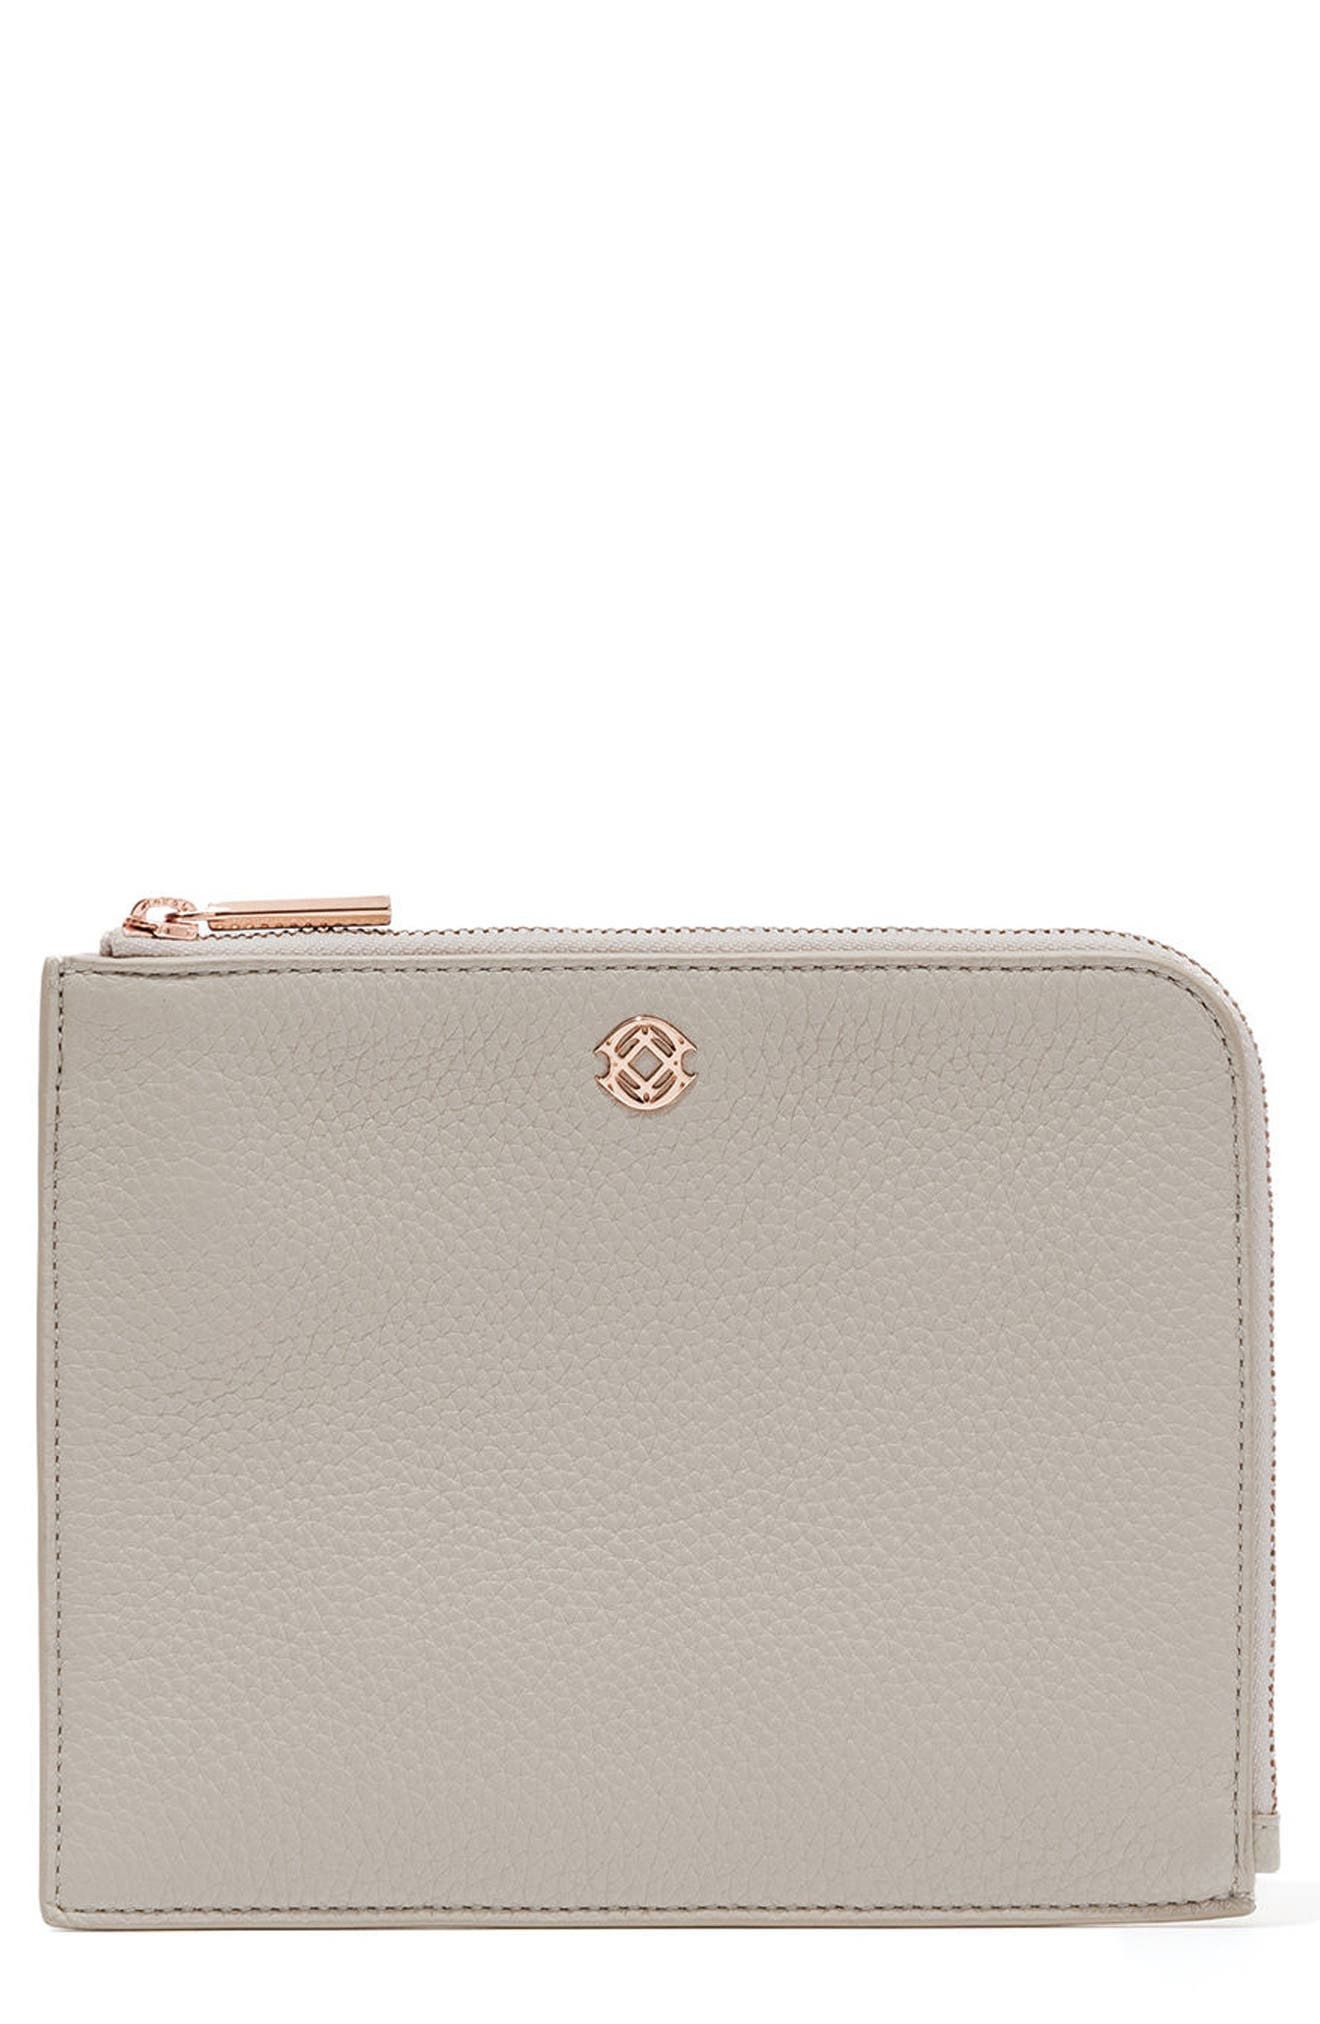 Small Elle Leather Clutch,                         Main,                         color, Bone